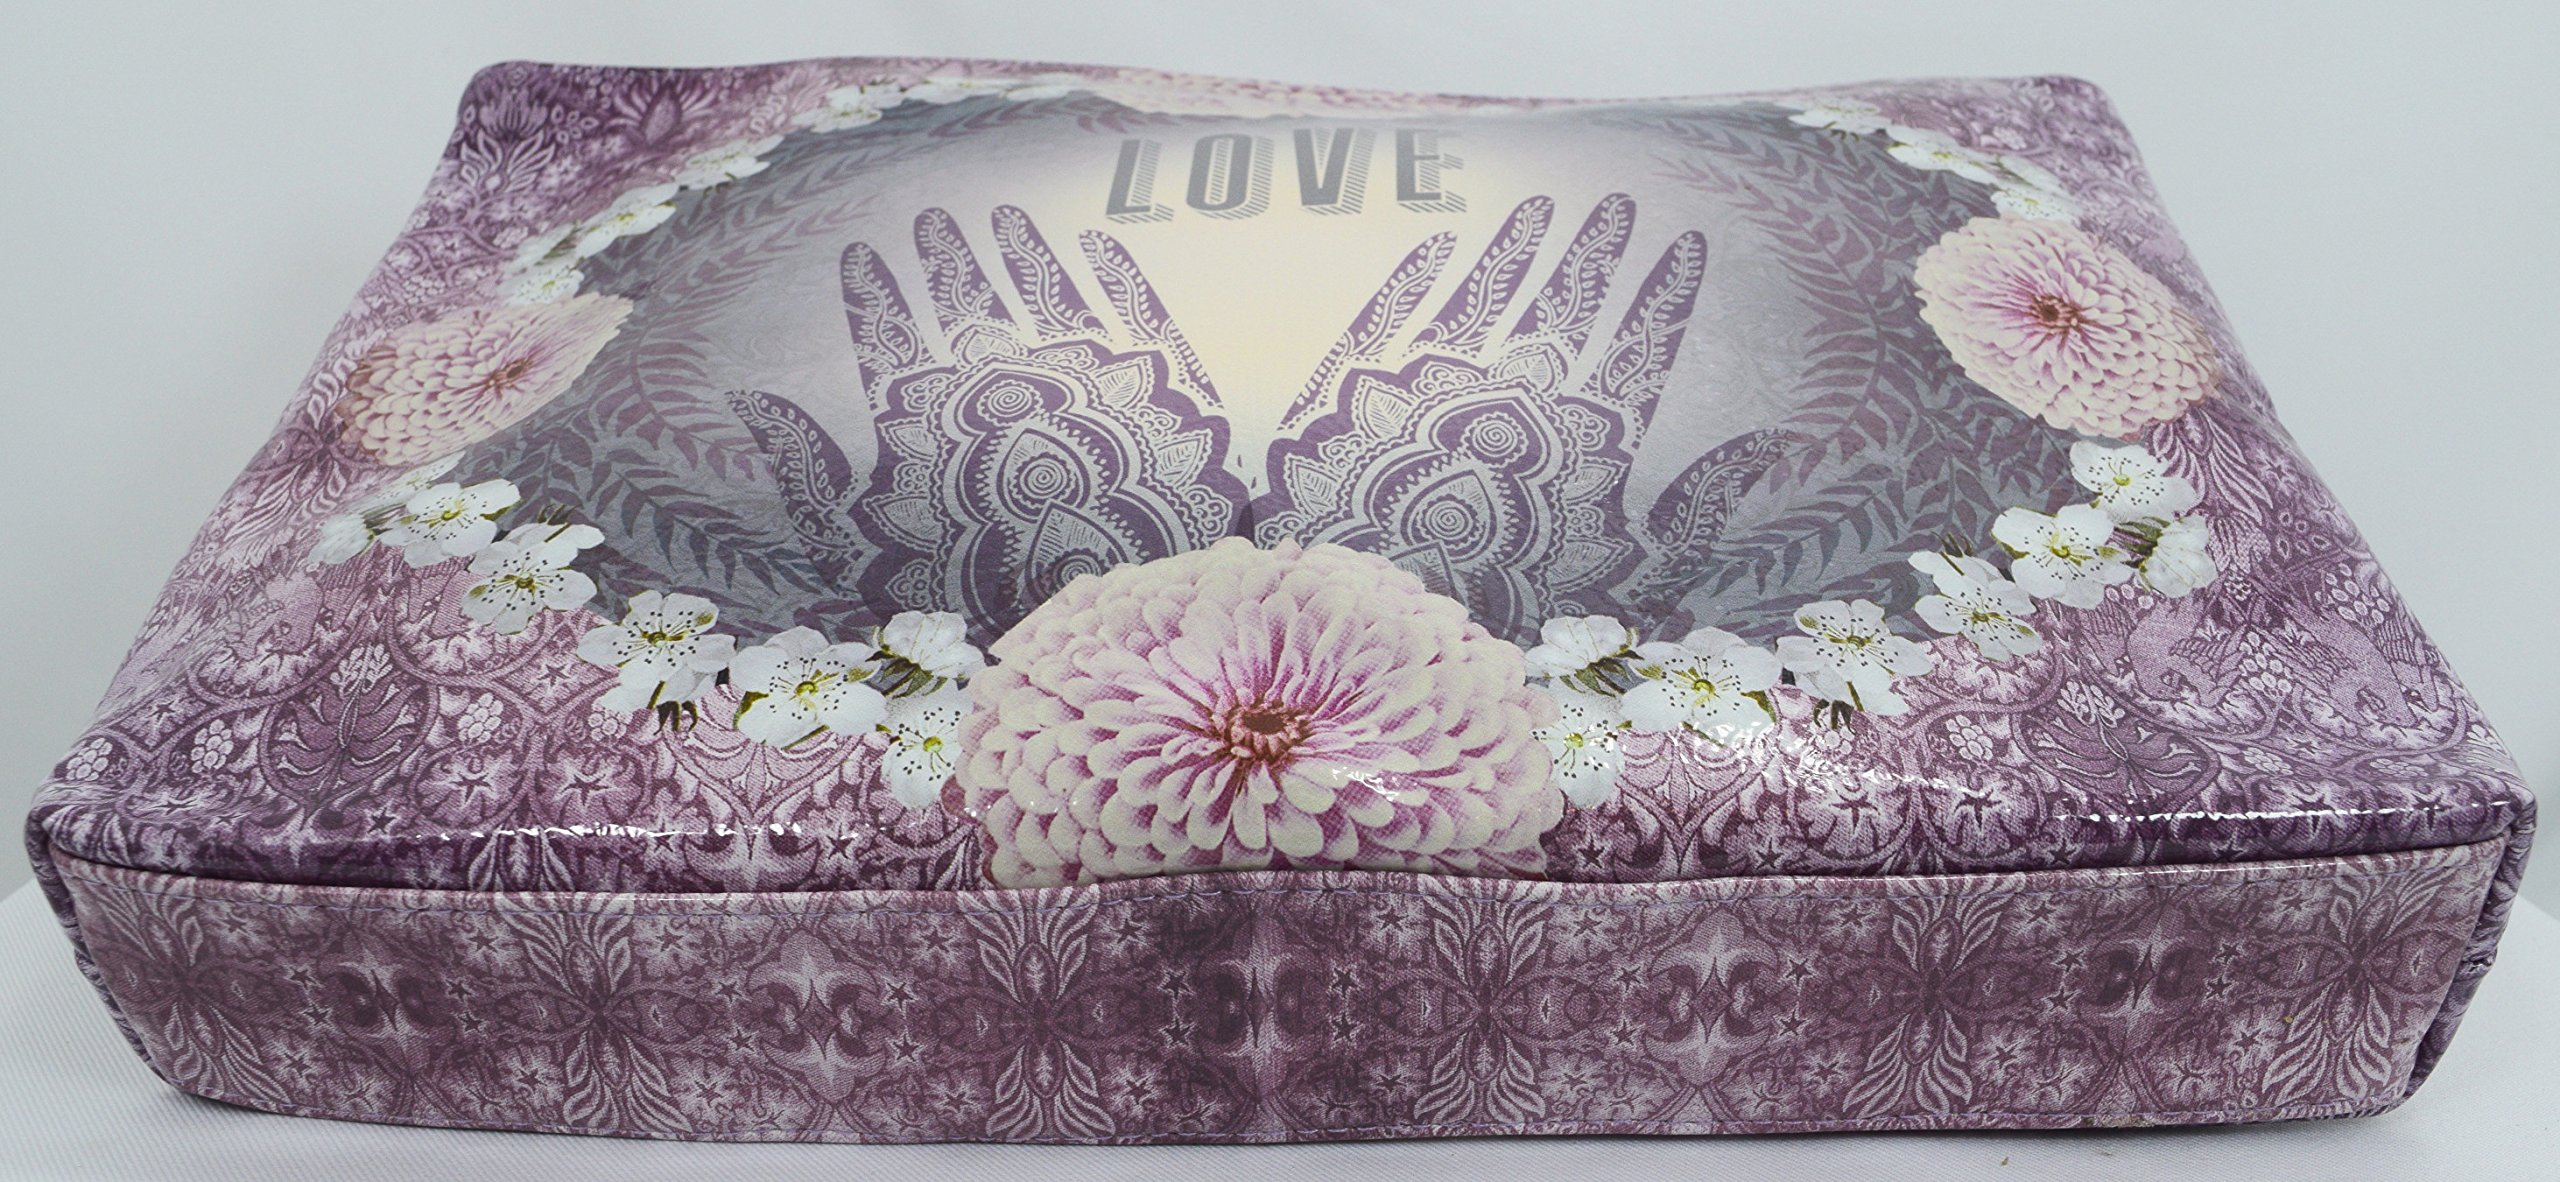 Love Henna Designs Oil Cloth Large Make-up or Accessory Travel Bag by Papaya (Image #3)